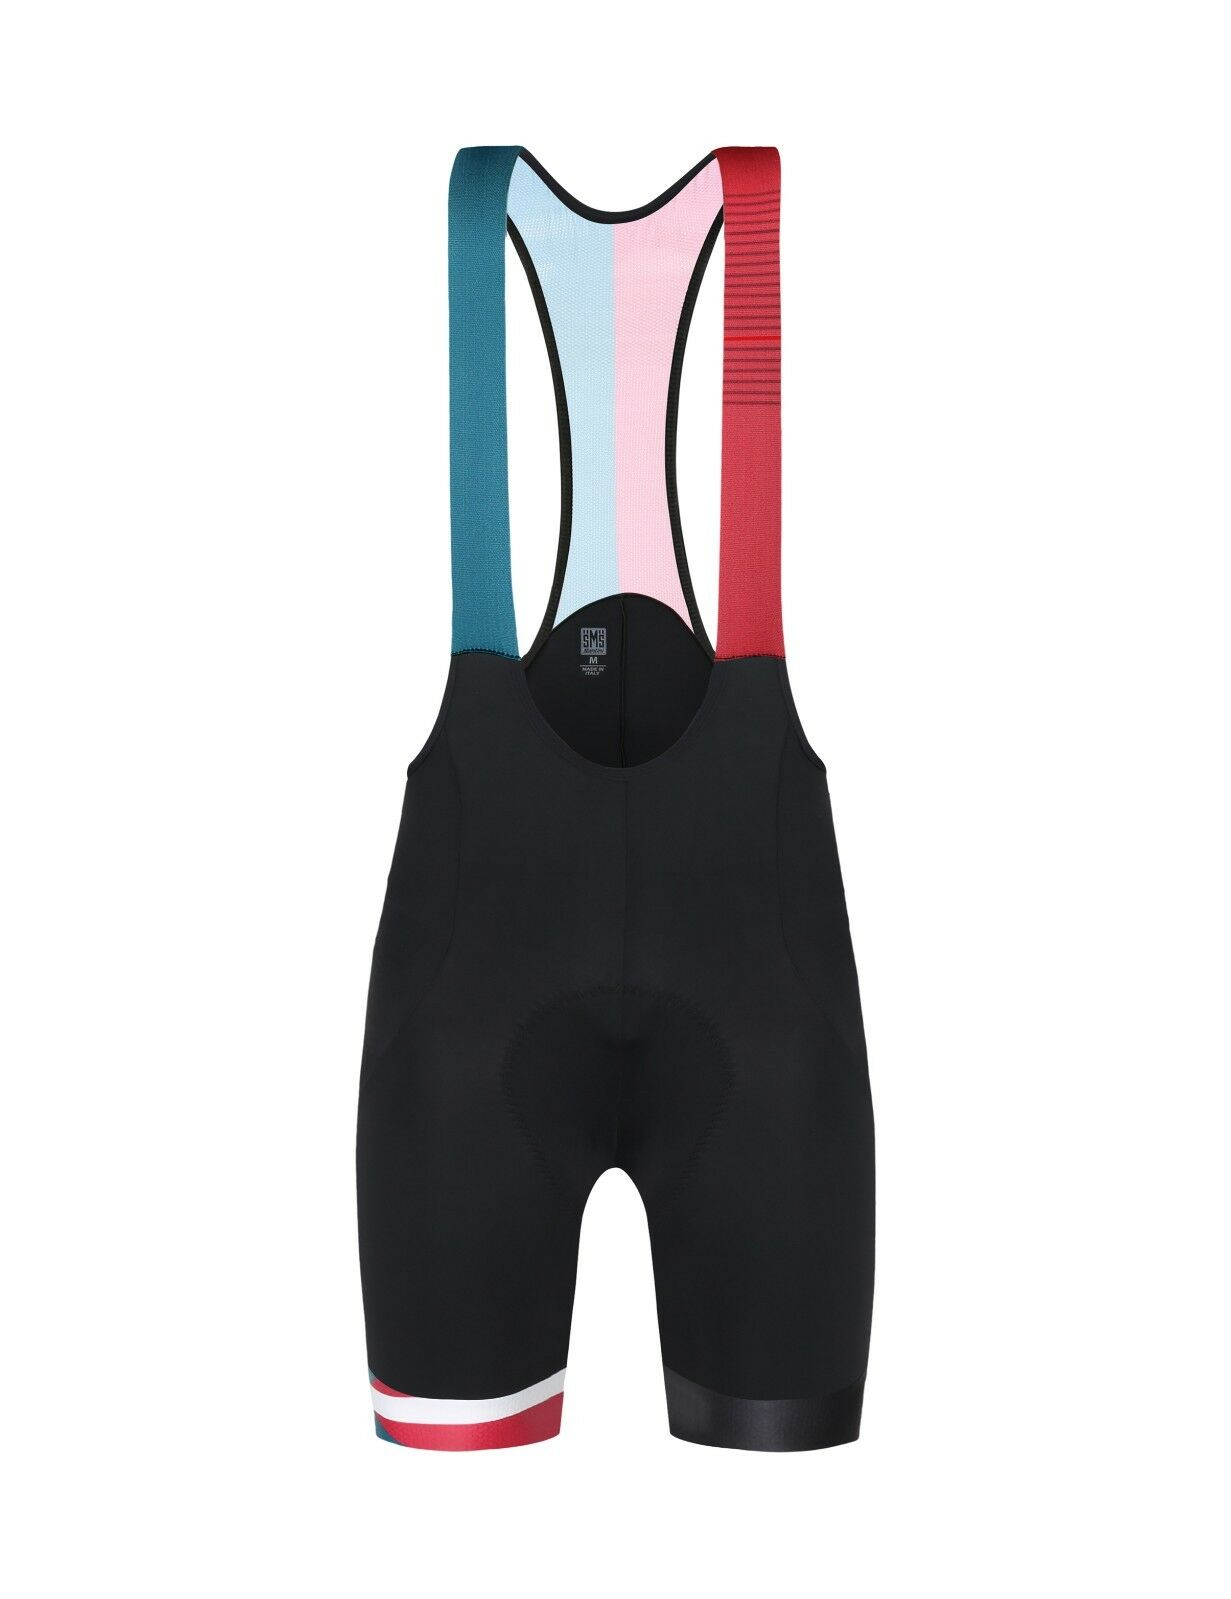 2018 La Vuelta Pais Vasco   Euskadi CYCLING Bib Shorts - Made by Santini